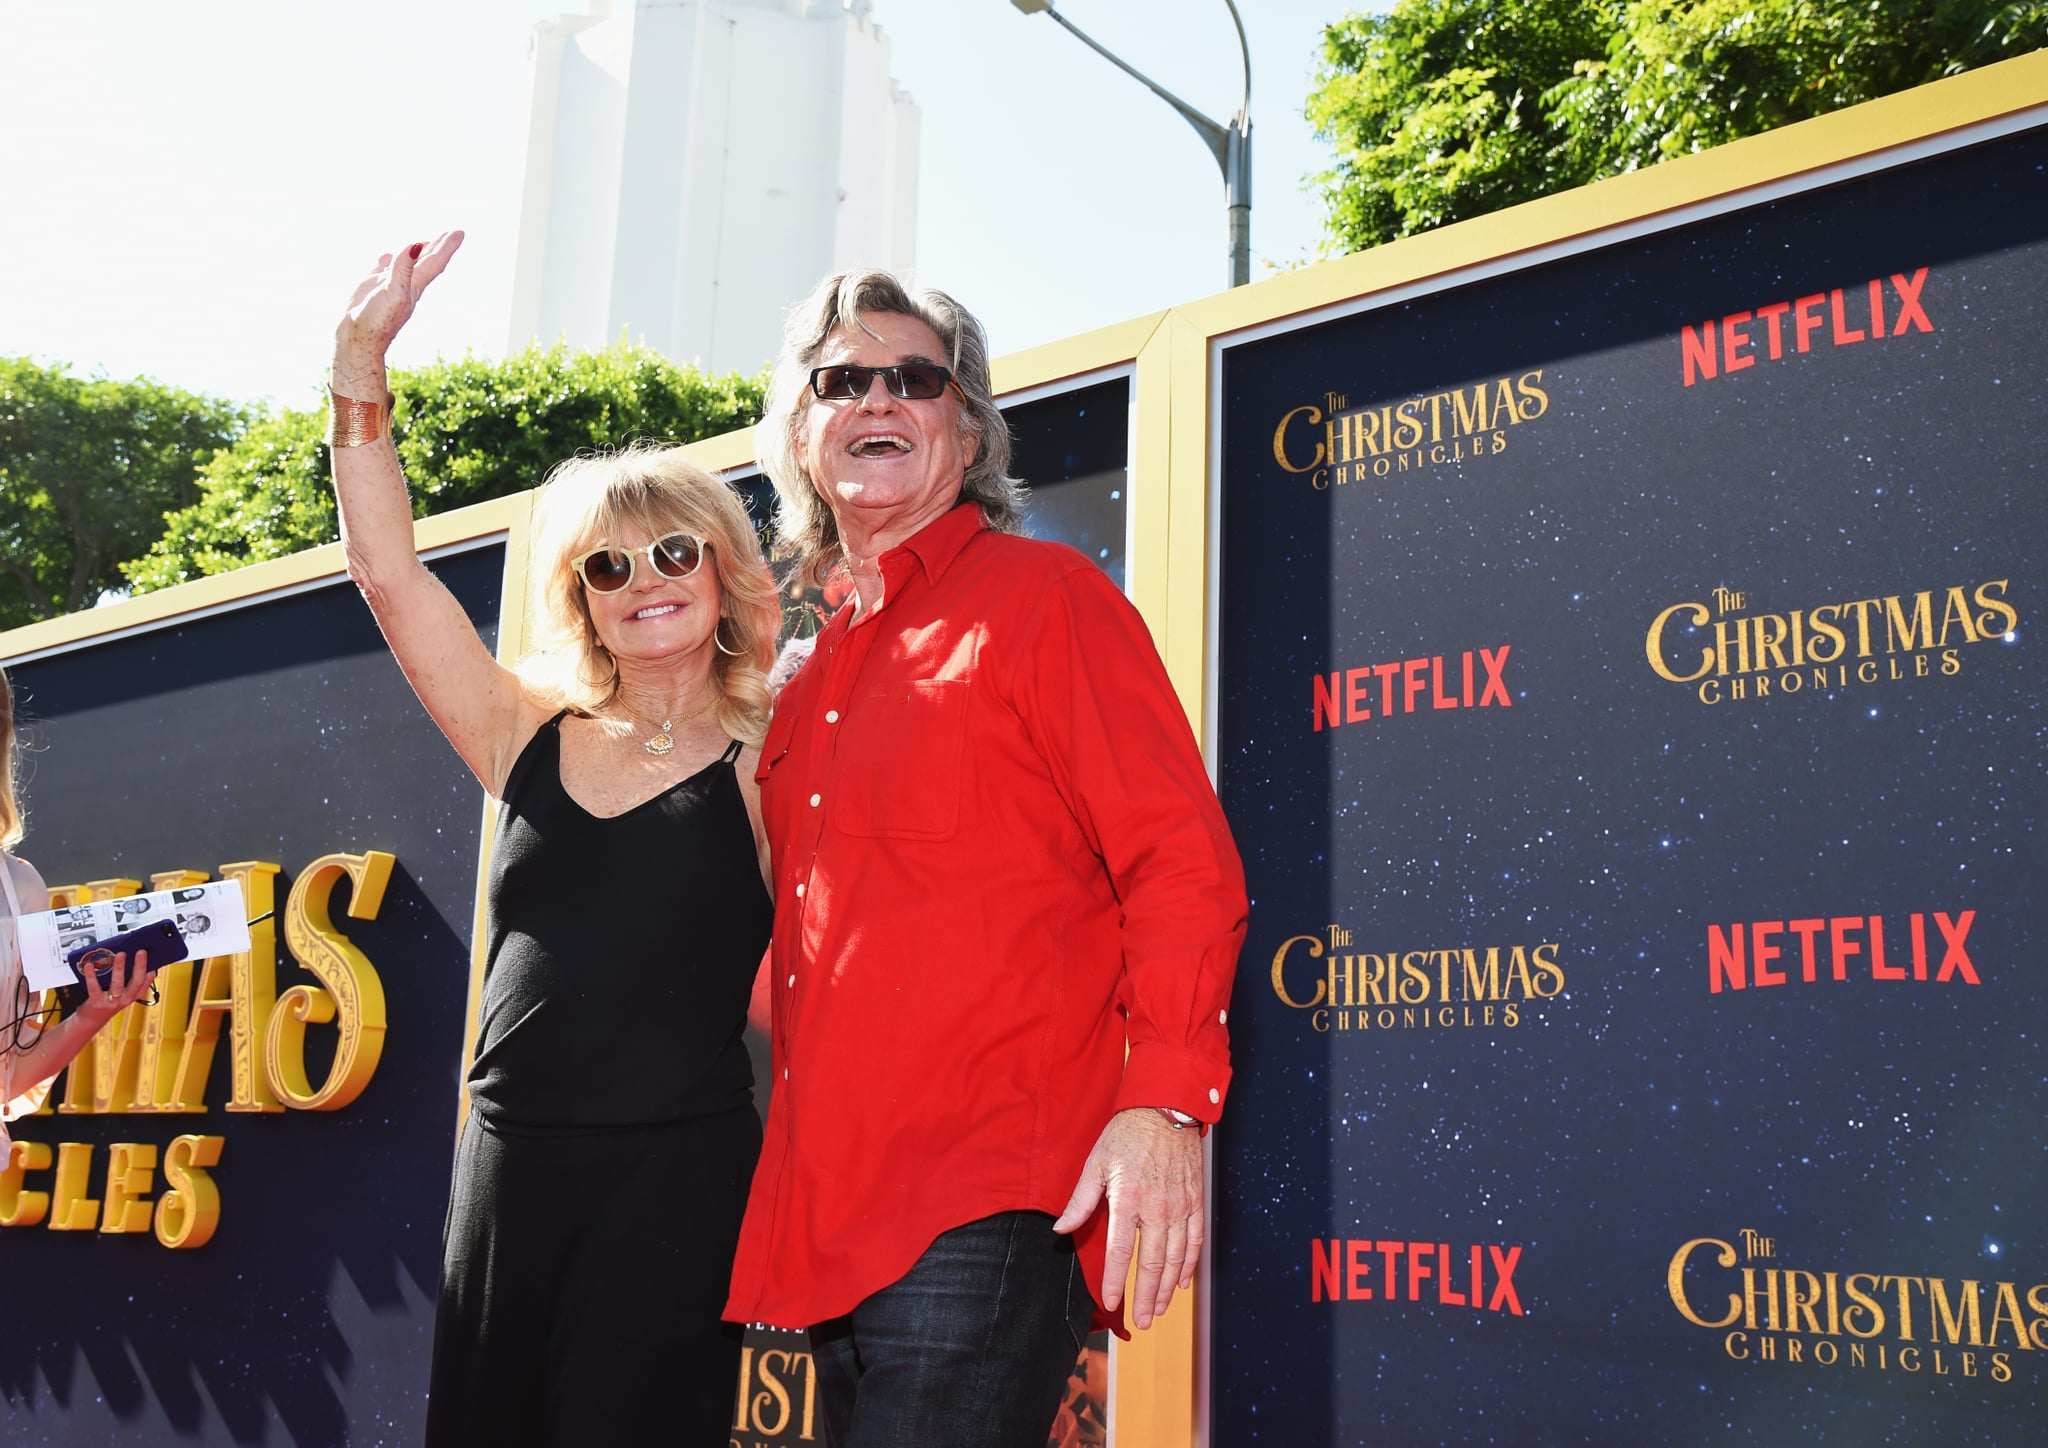 The Christmas Chronicles 2.Celebrity Entertainment Kurt Russell And Goldie Hawn